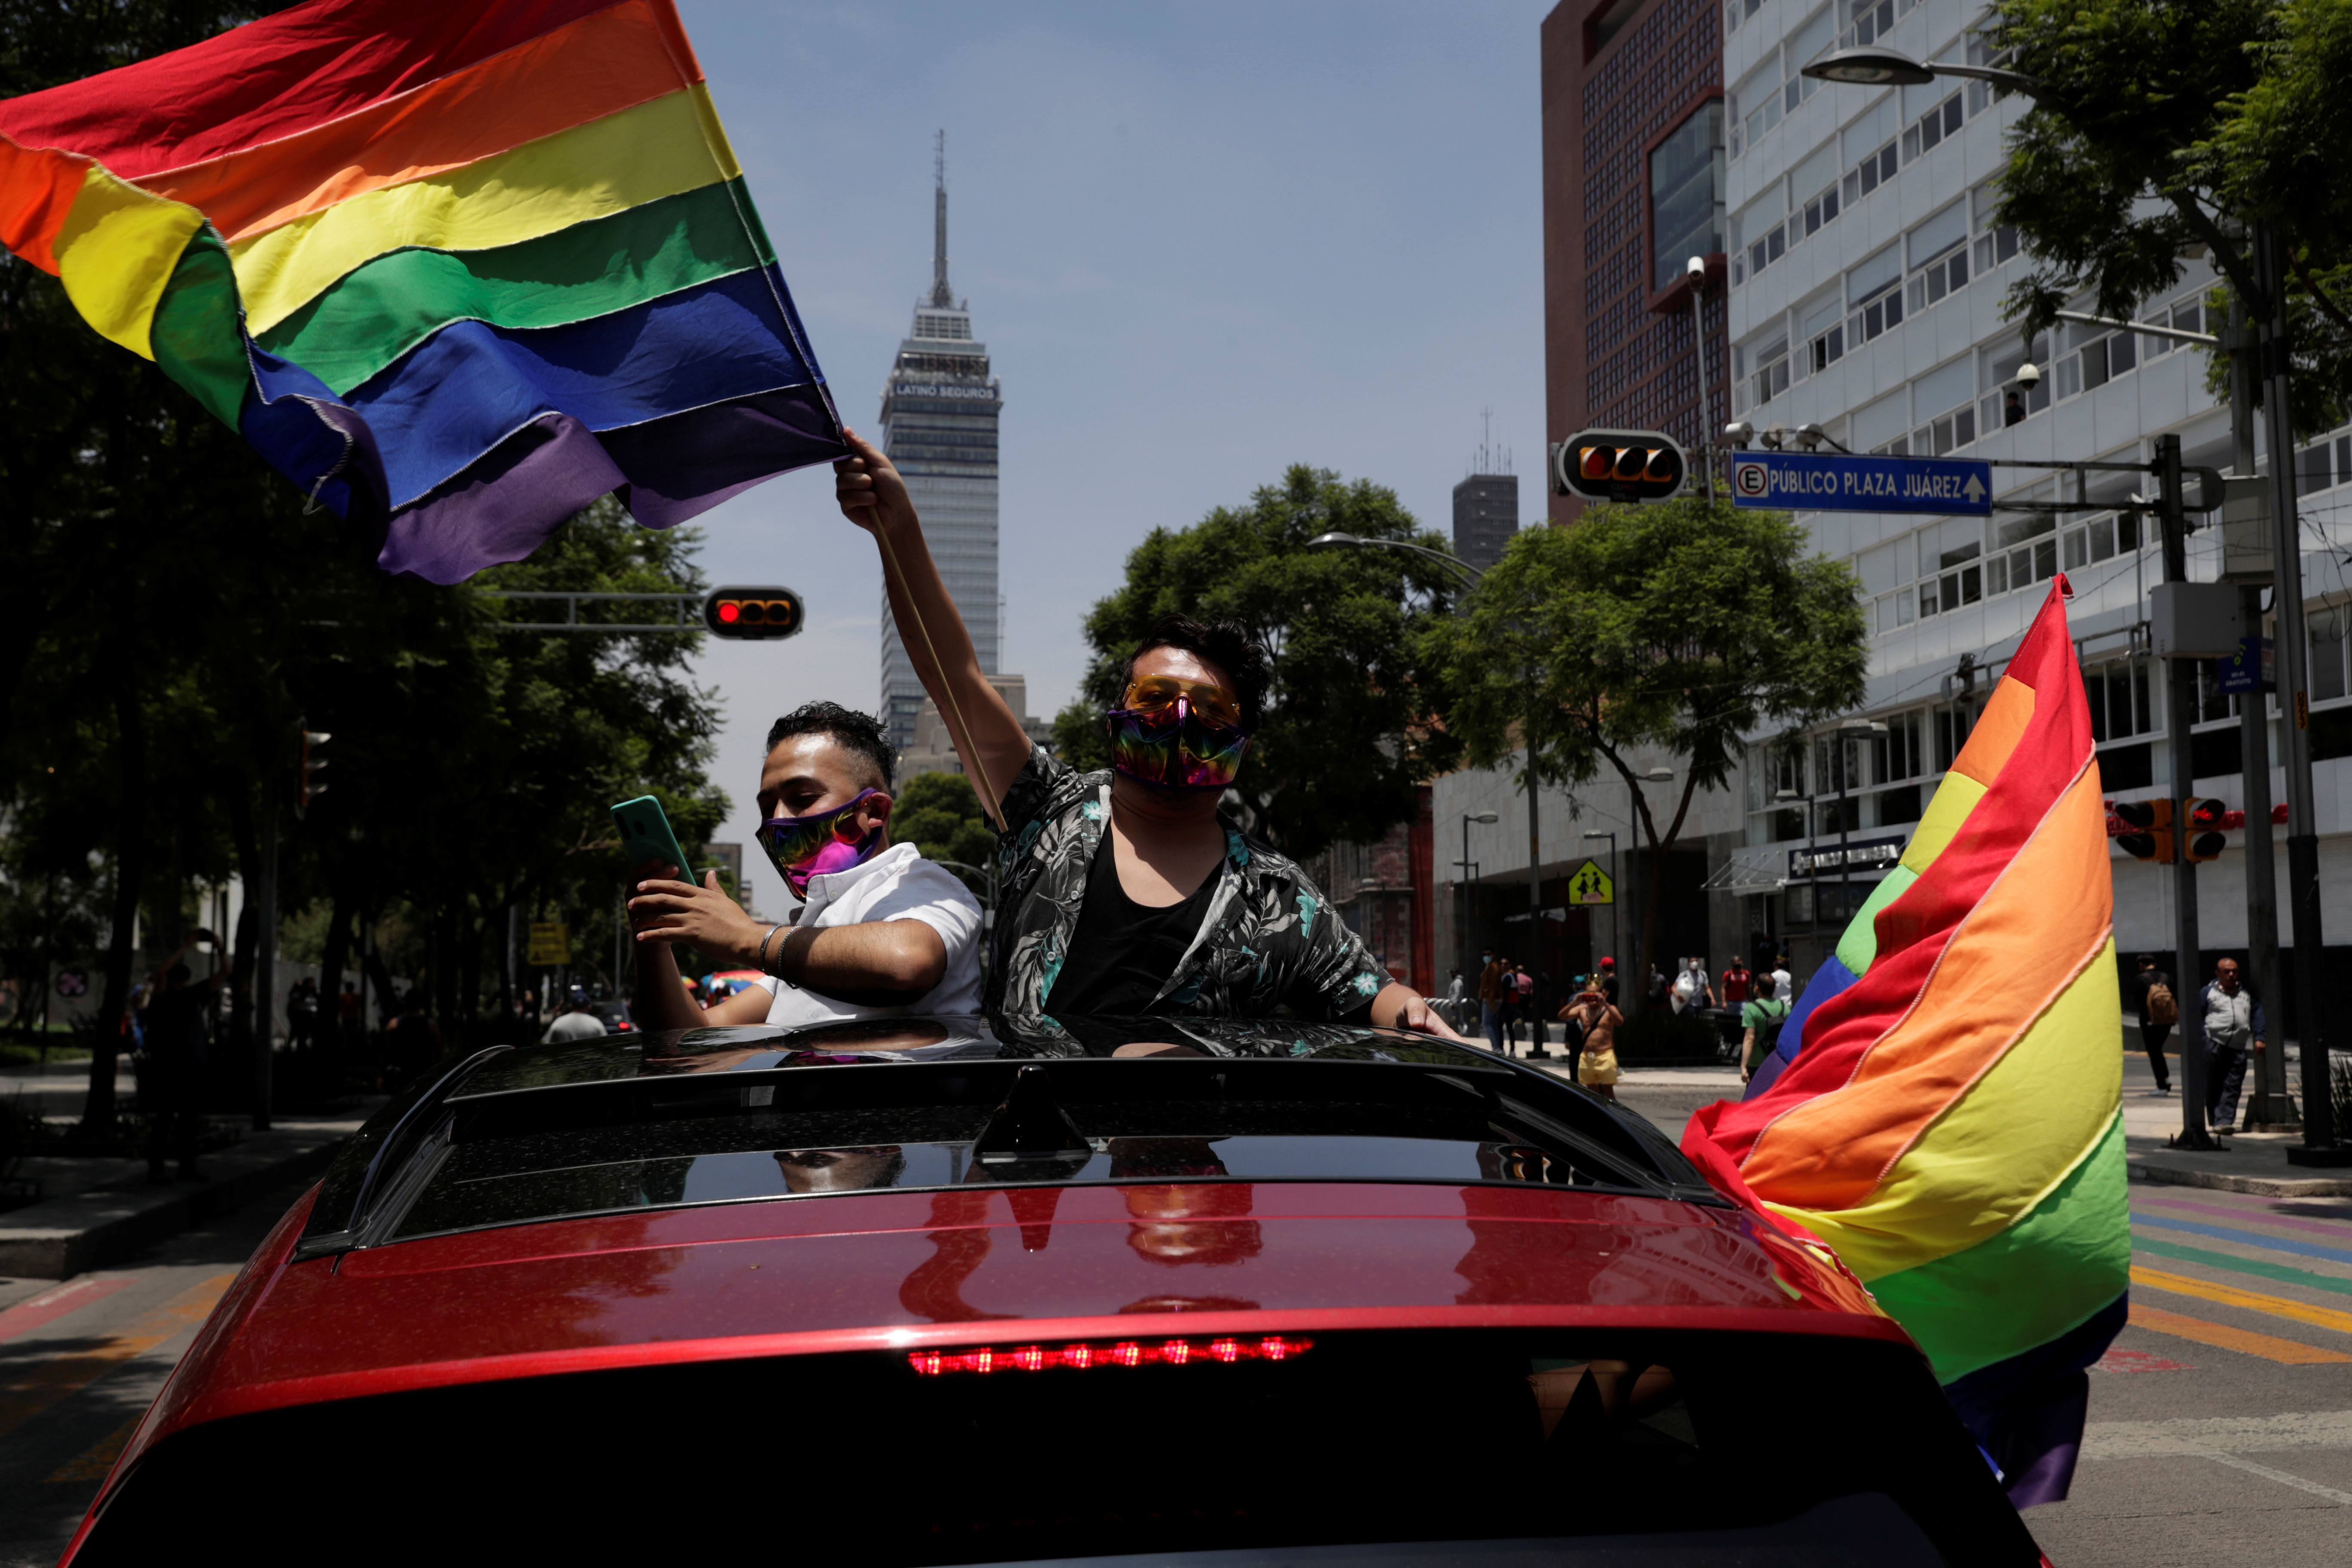 A participant flutters a rainbow flag near the Bellas Artes Palace to celebrate gay pride, although the Mexican LGBT community called for an online celebration as a protective measure amid the coronavirus disease (COVID-19) outbreak, in Mexico City, Mexico June 27, 2020 REUTERS/Henry Romero - RC20IH94V3C2